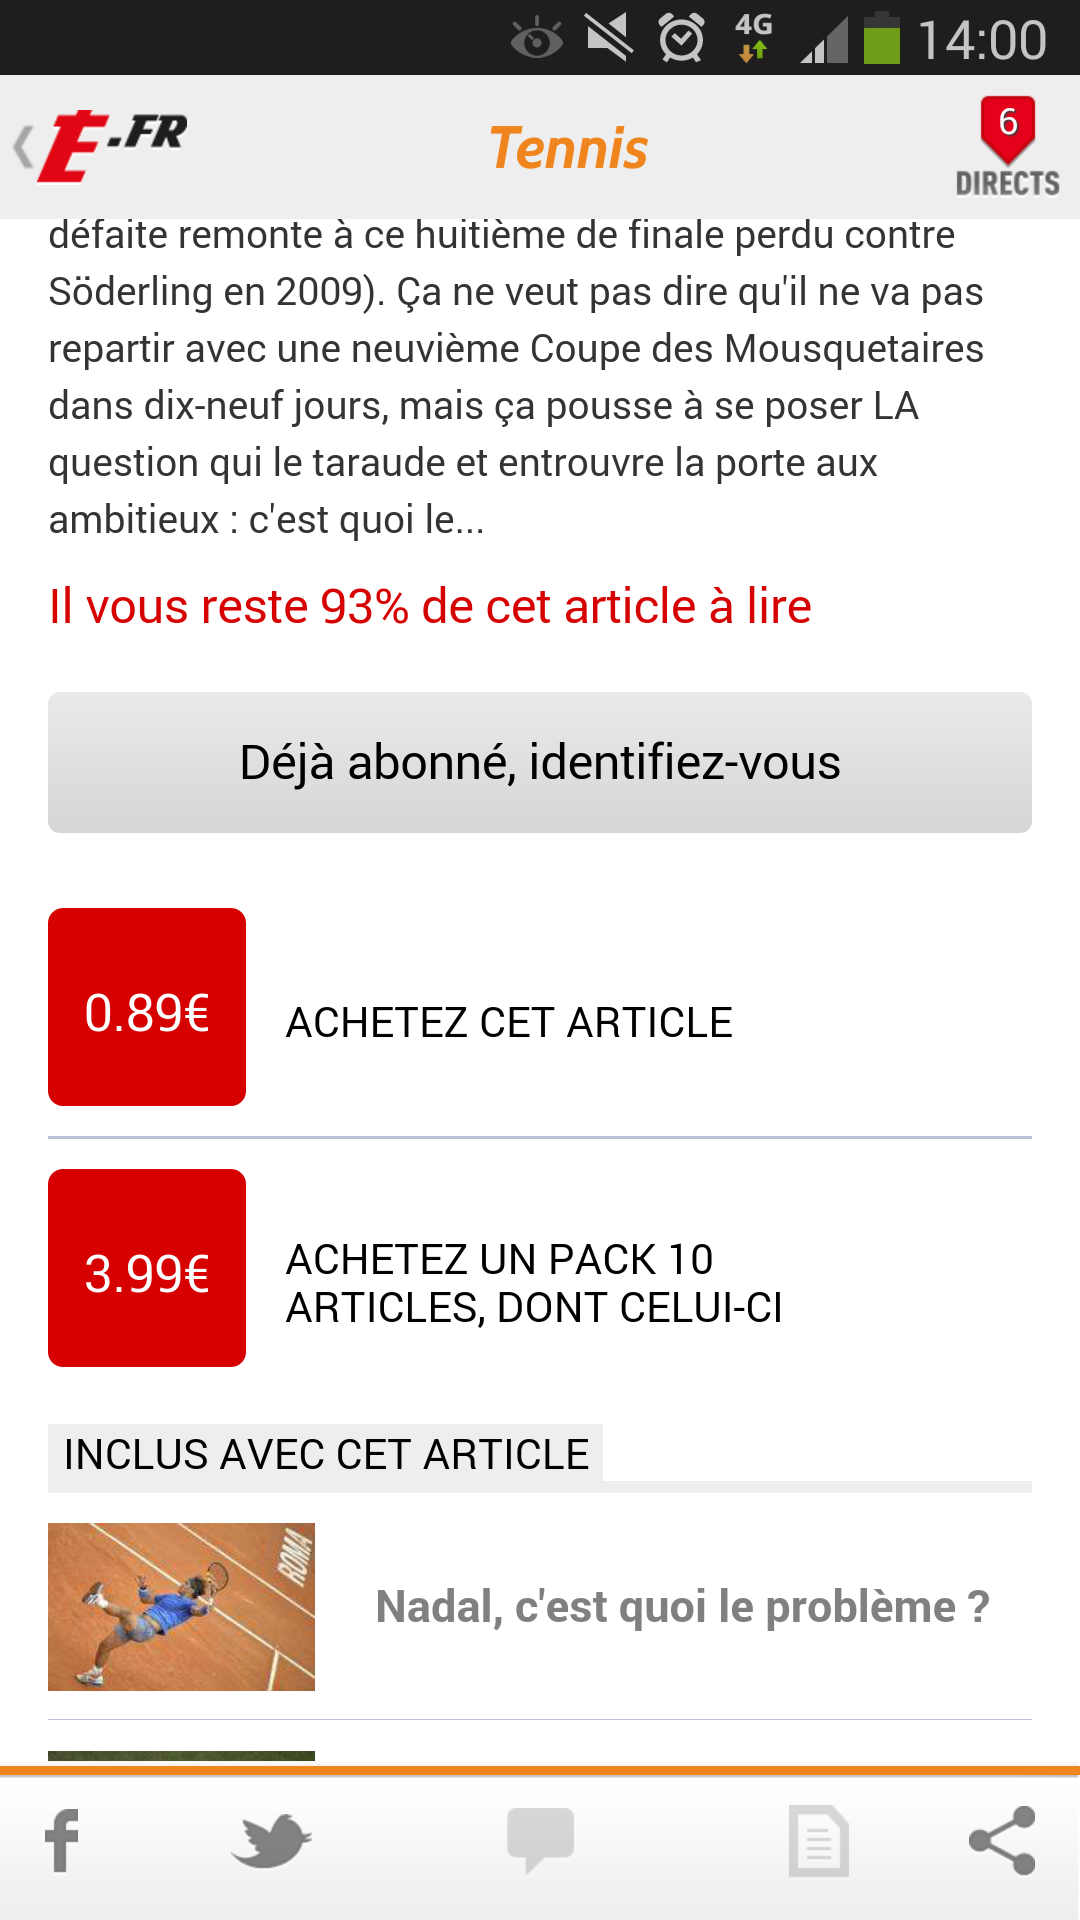 Achat-contenu-premium-application-mobile